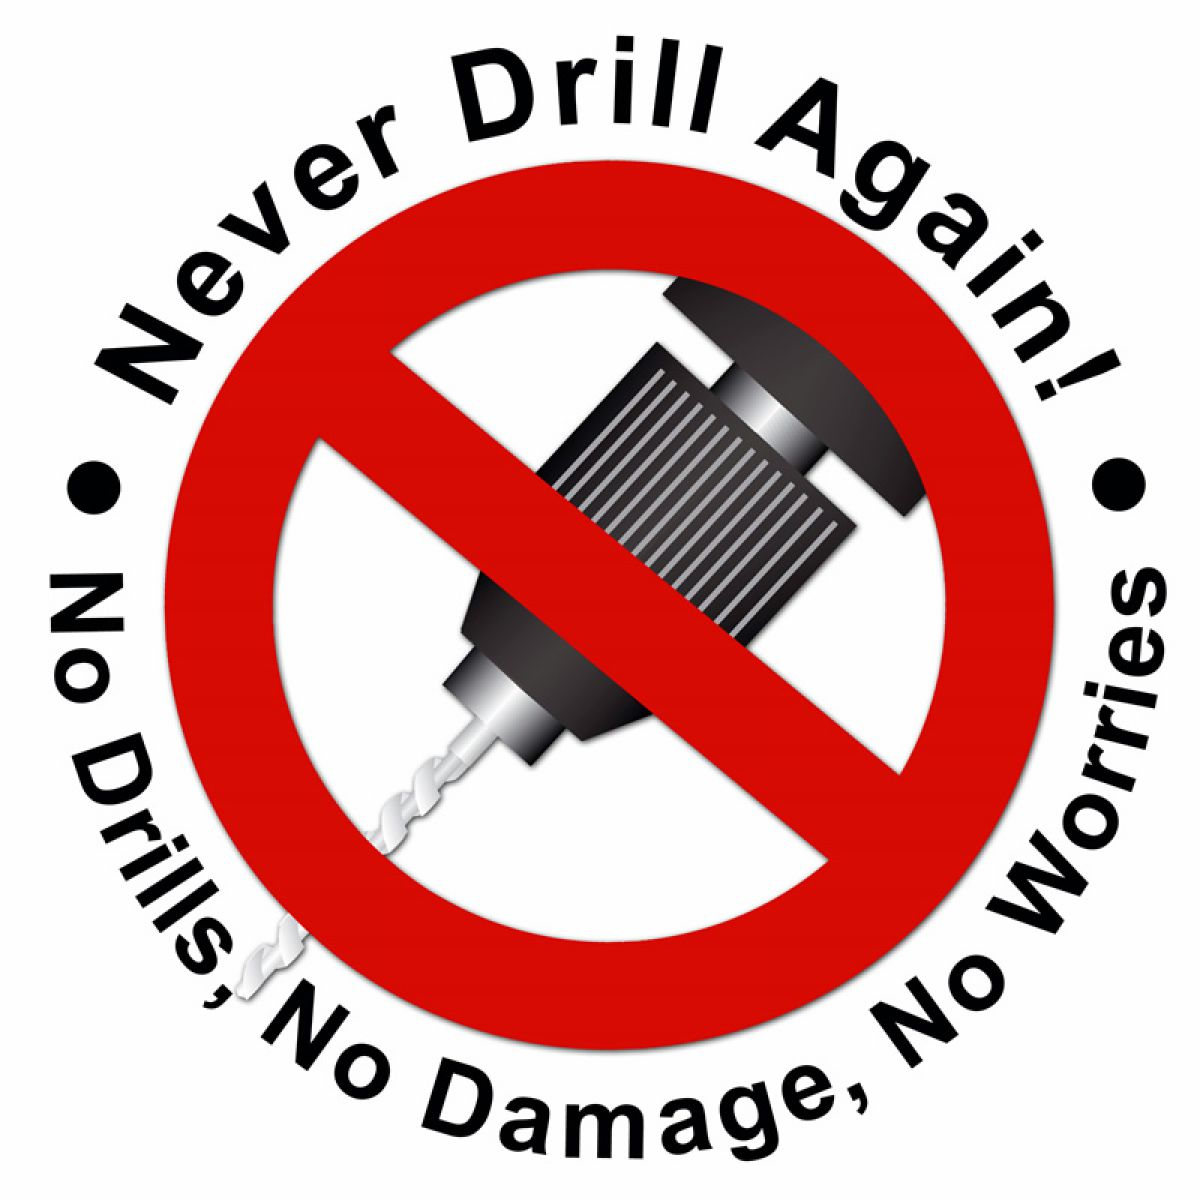 Never drill again bathroom accessories - Never Drill Again Hoom Toilet Roll Holder Uk Bathrooms